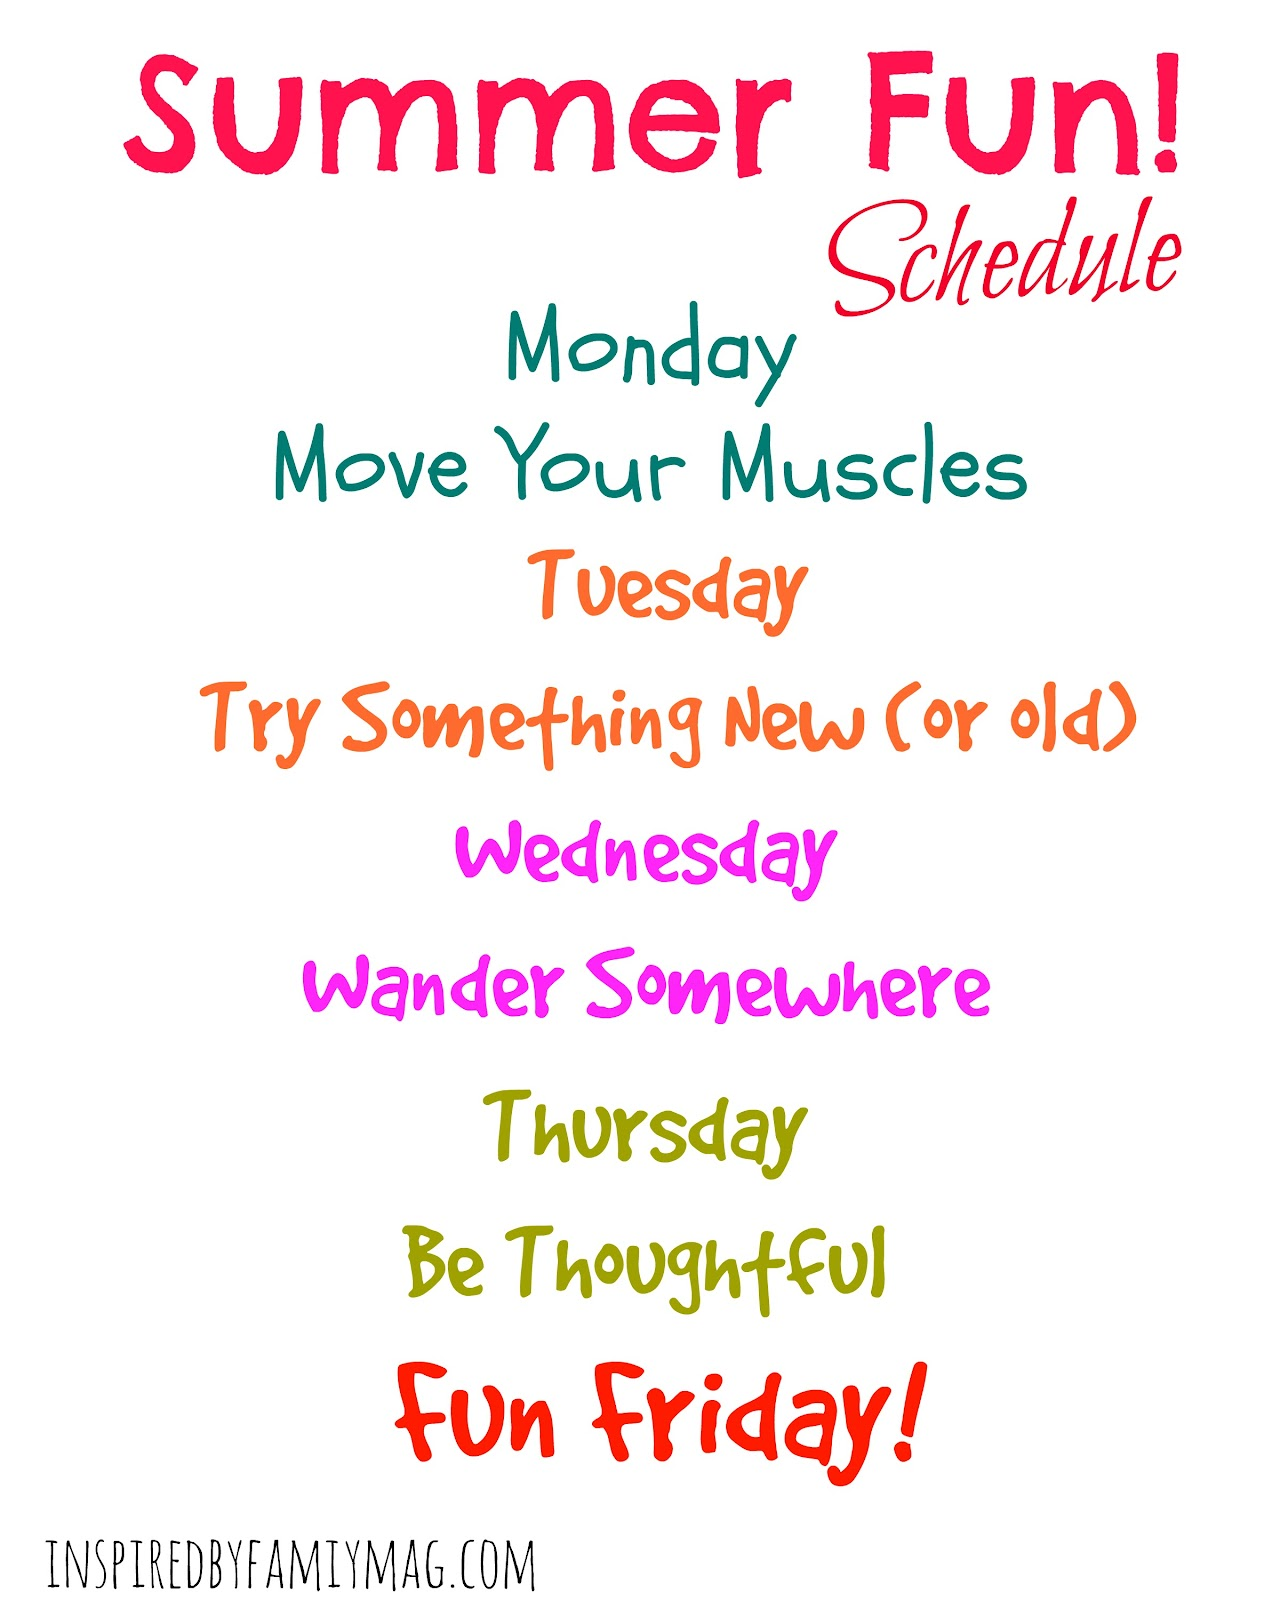 summer fun schedule 3.jpg